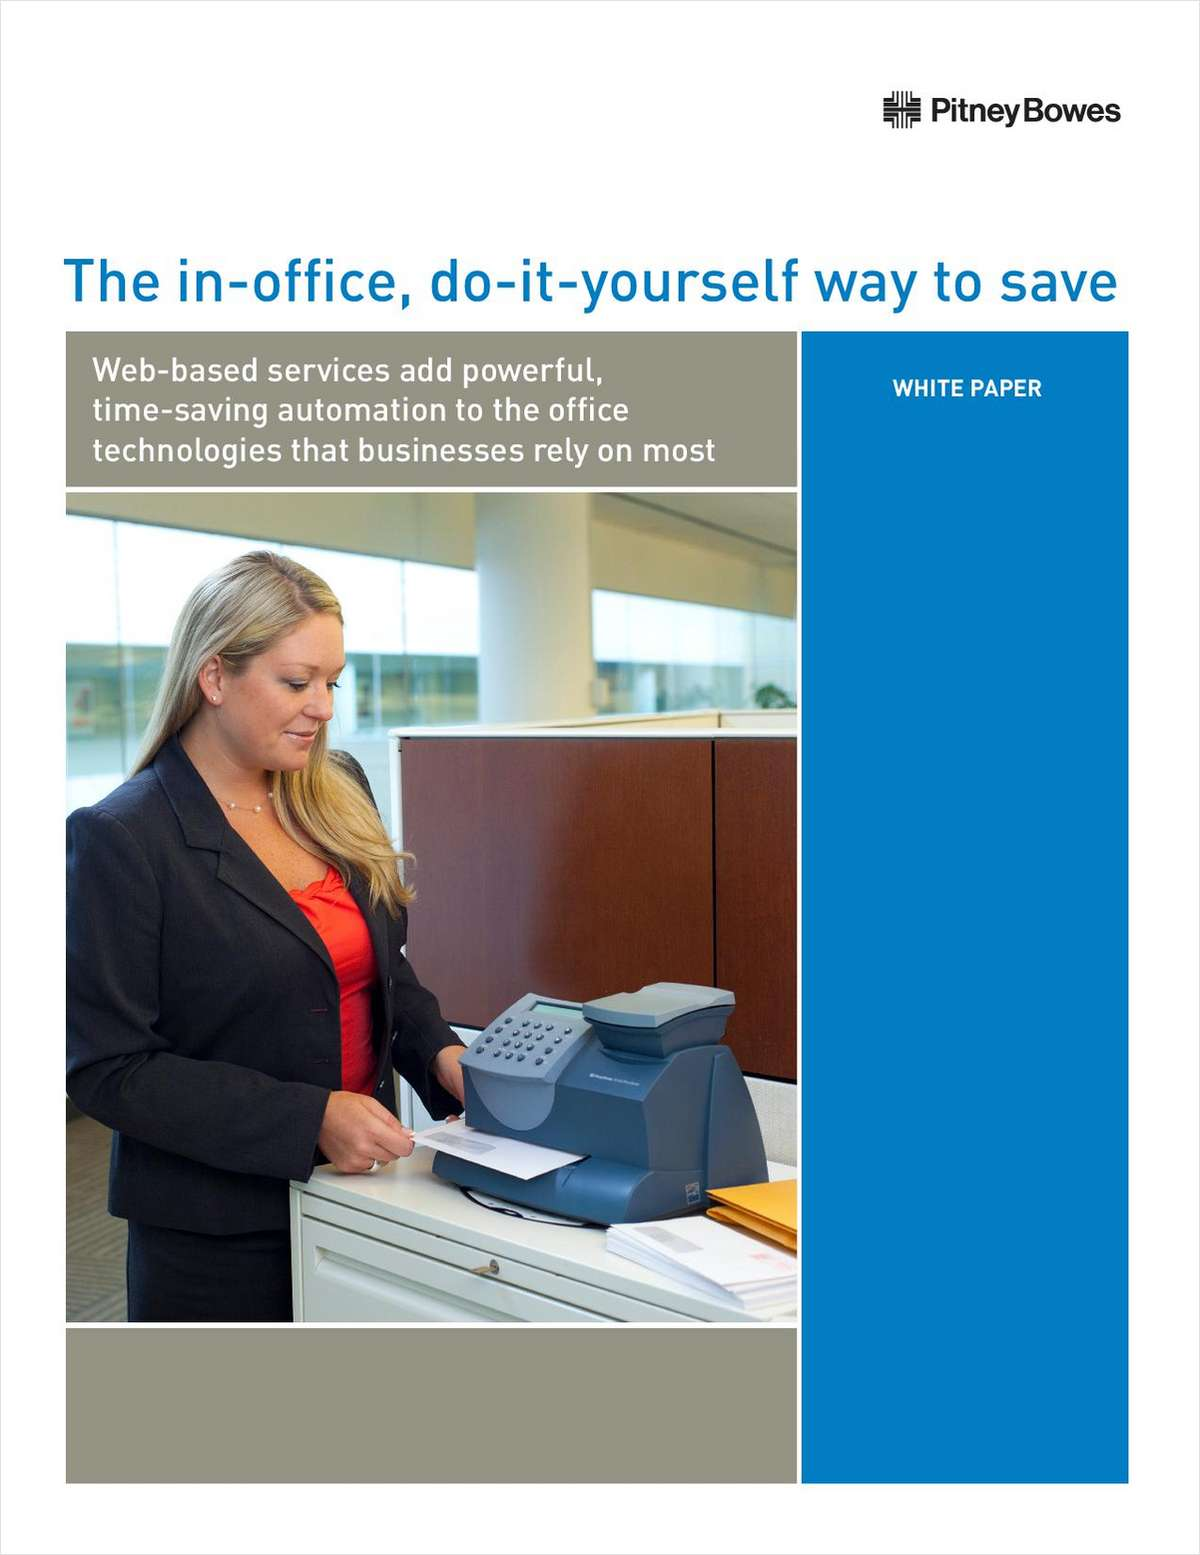 The Top 3 Ways a Postage Meter Can Save Your Business Money